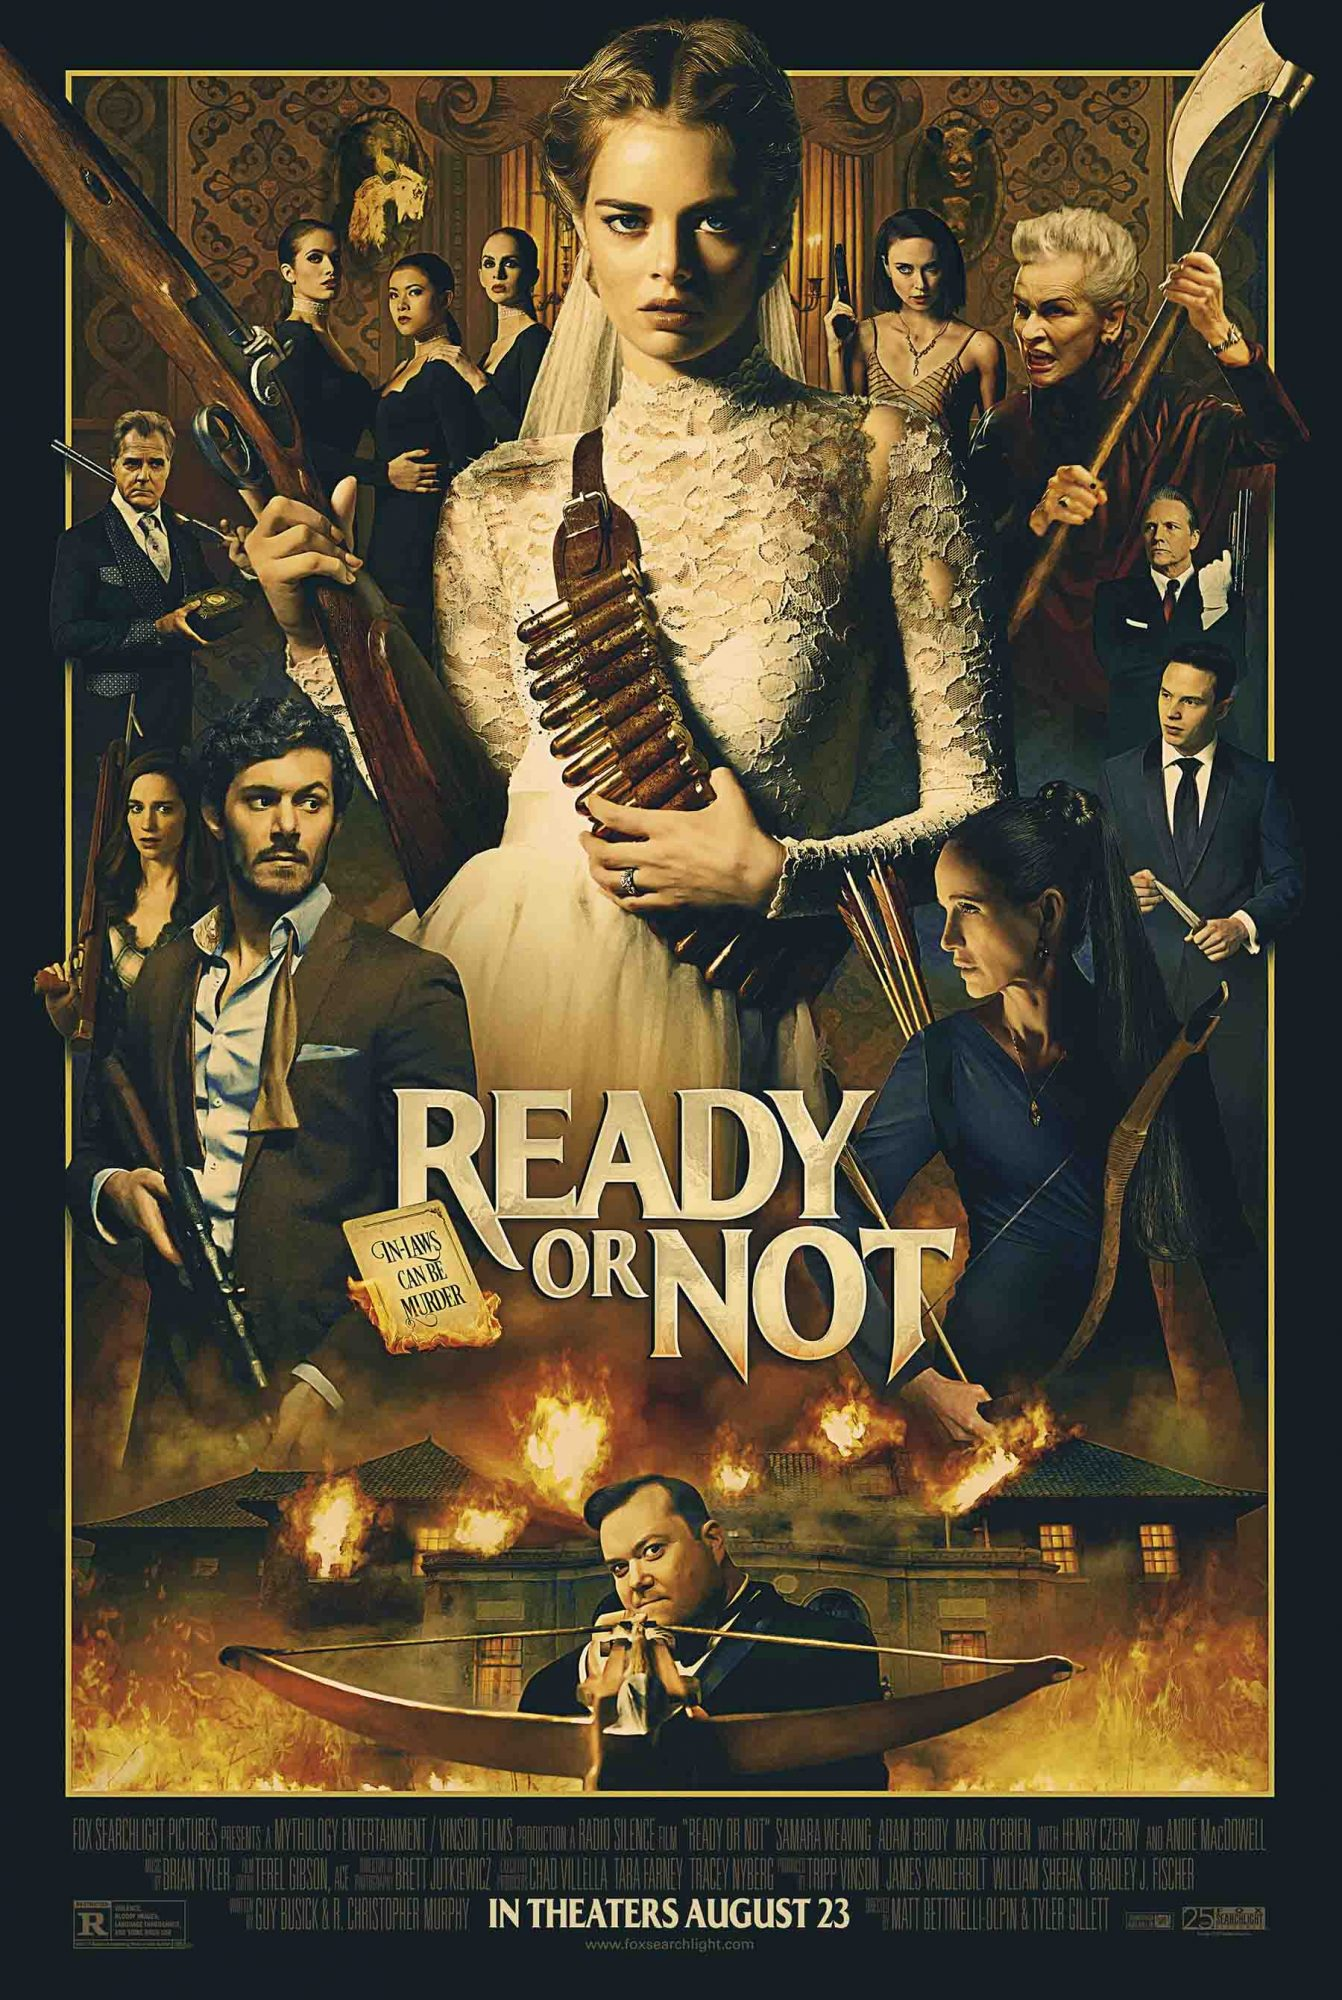 Ready or Not poster CR: Fox Searchlight